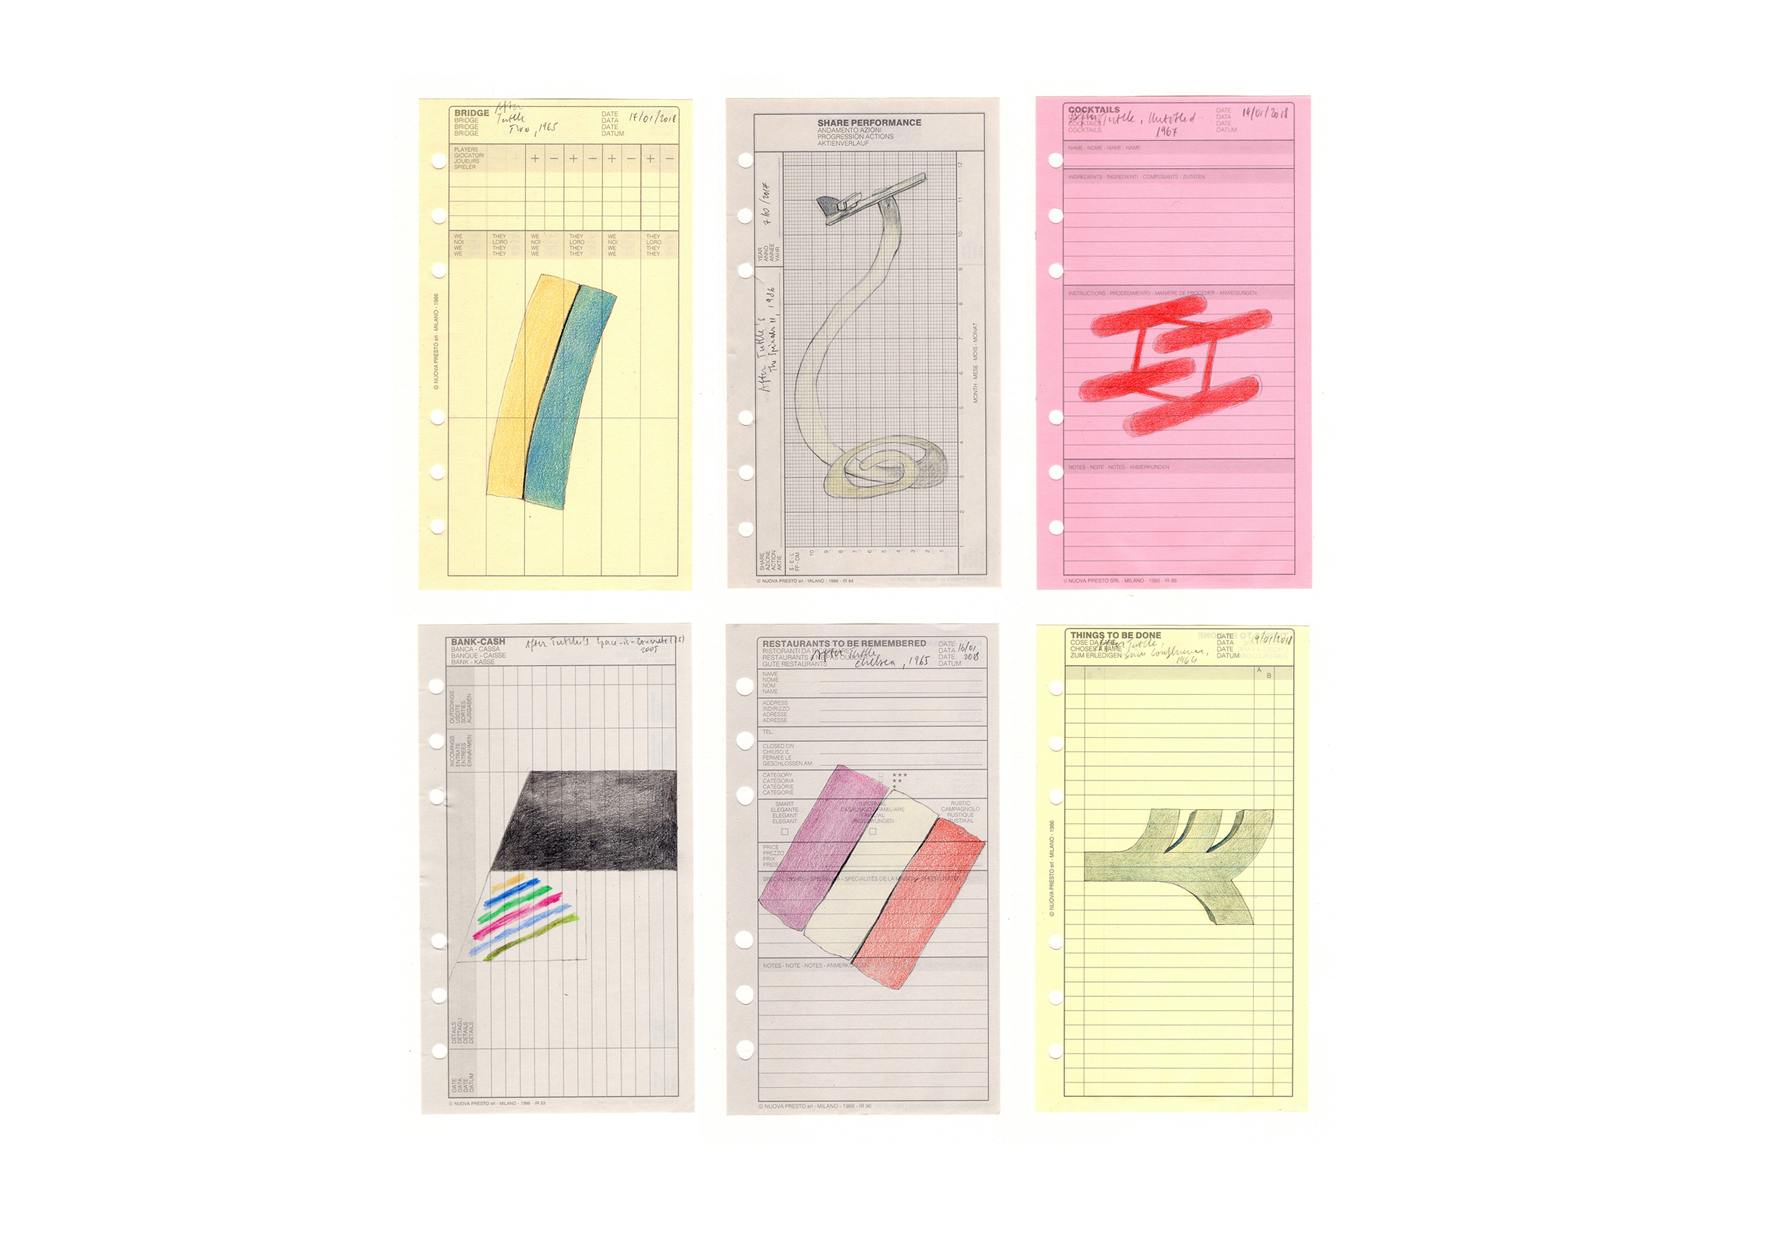 AFTER TUTTLE (2017-2018) ongoing series of colored pencil drawings on agenda pages, 17 x 9.50 cm each